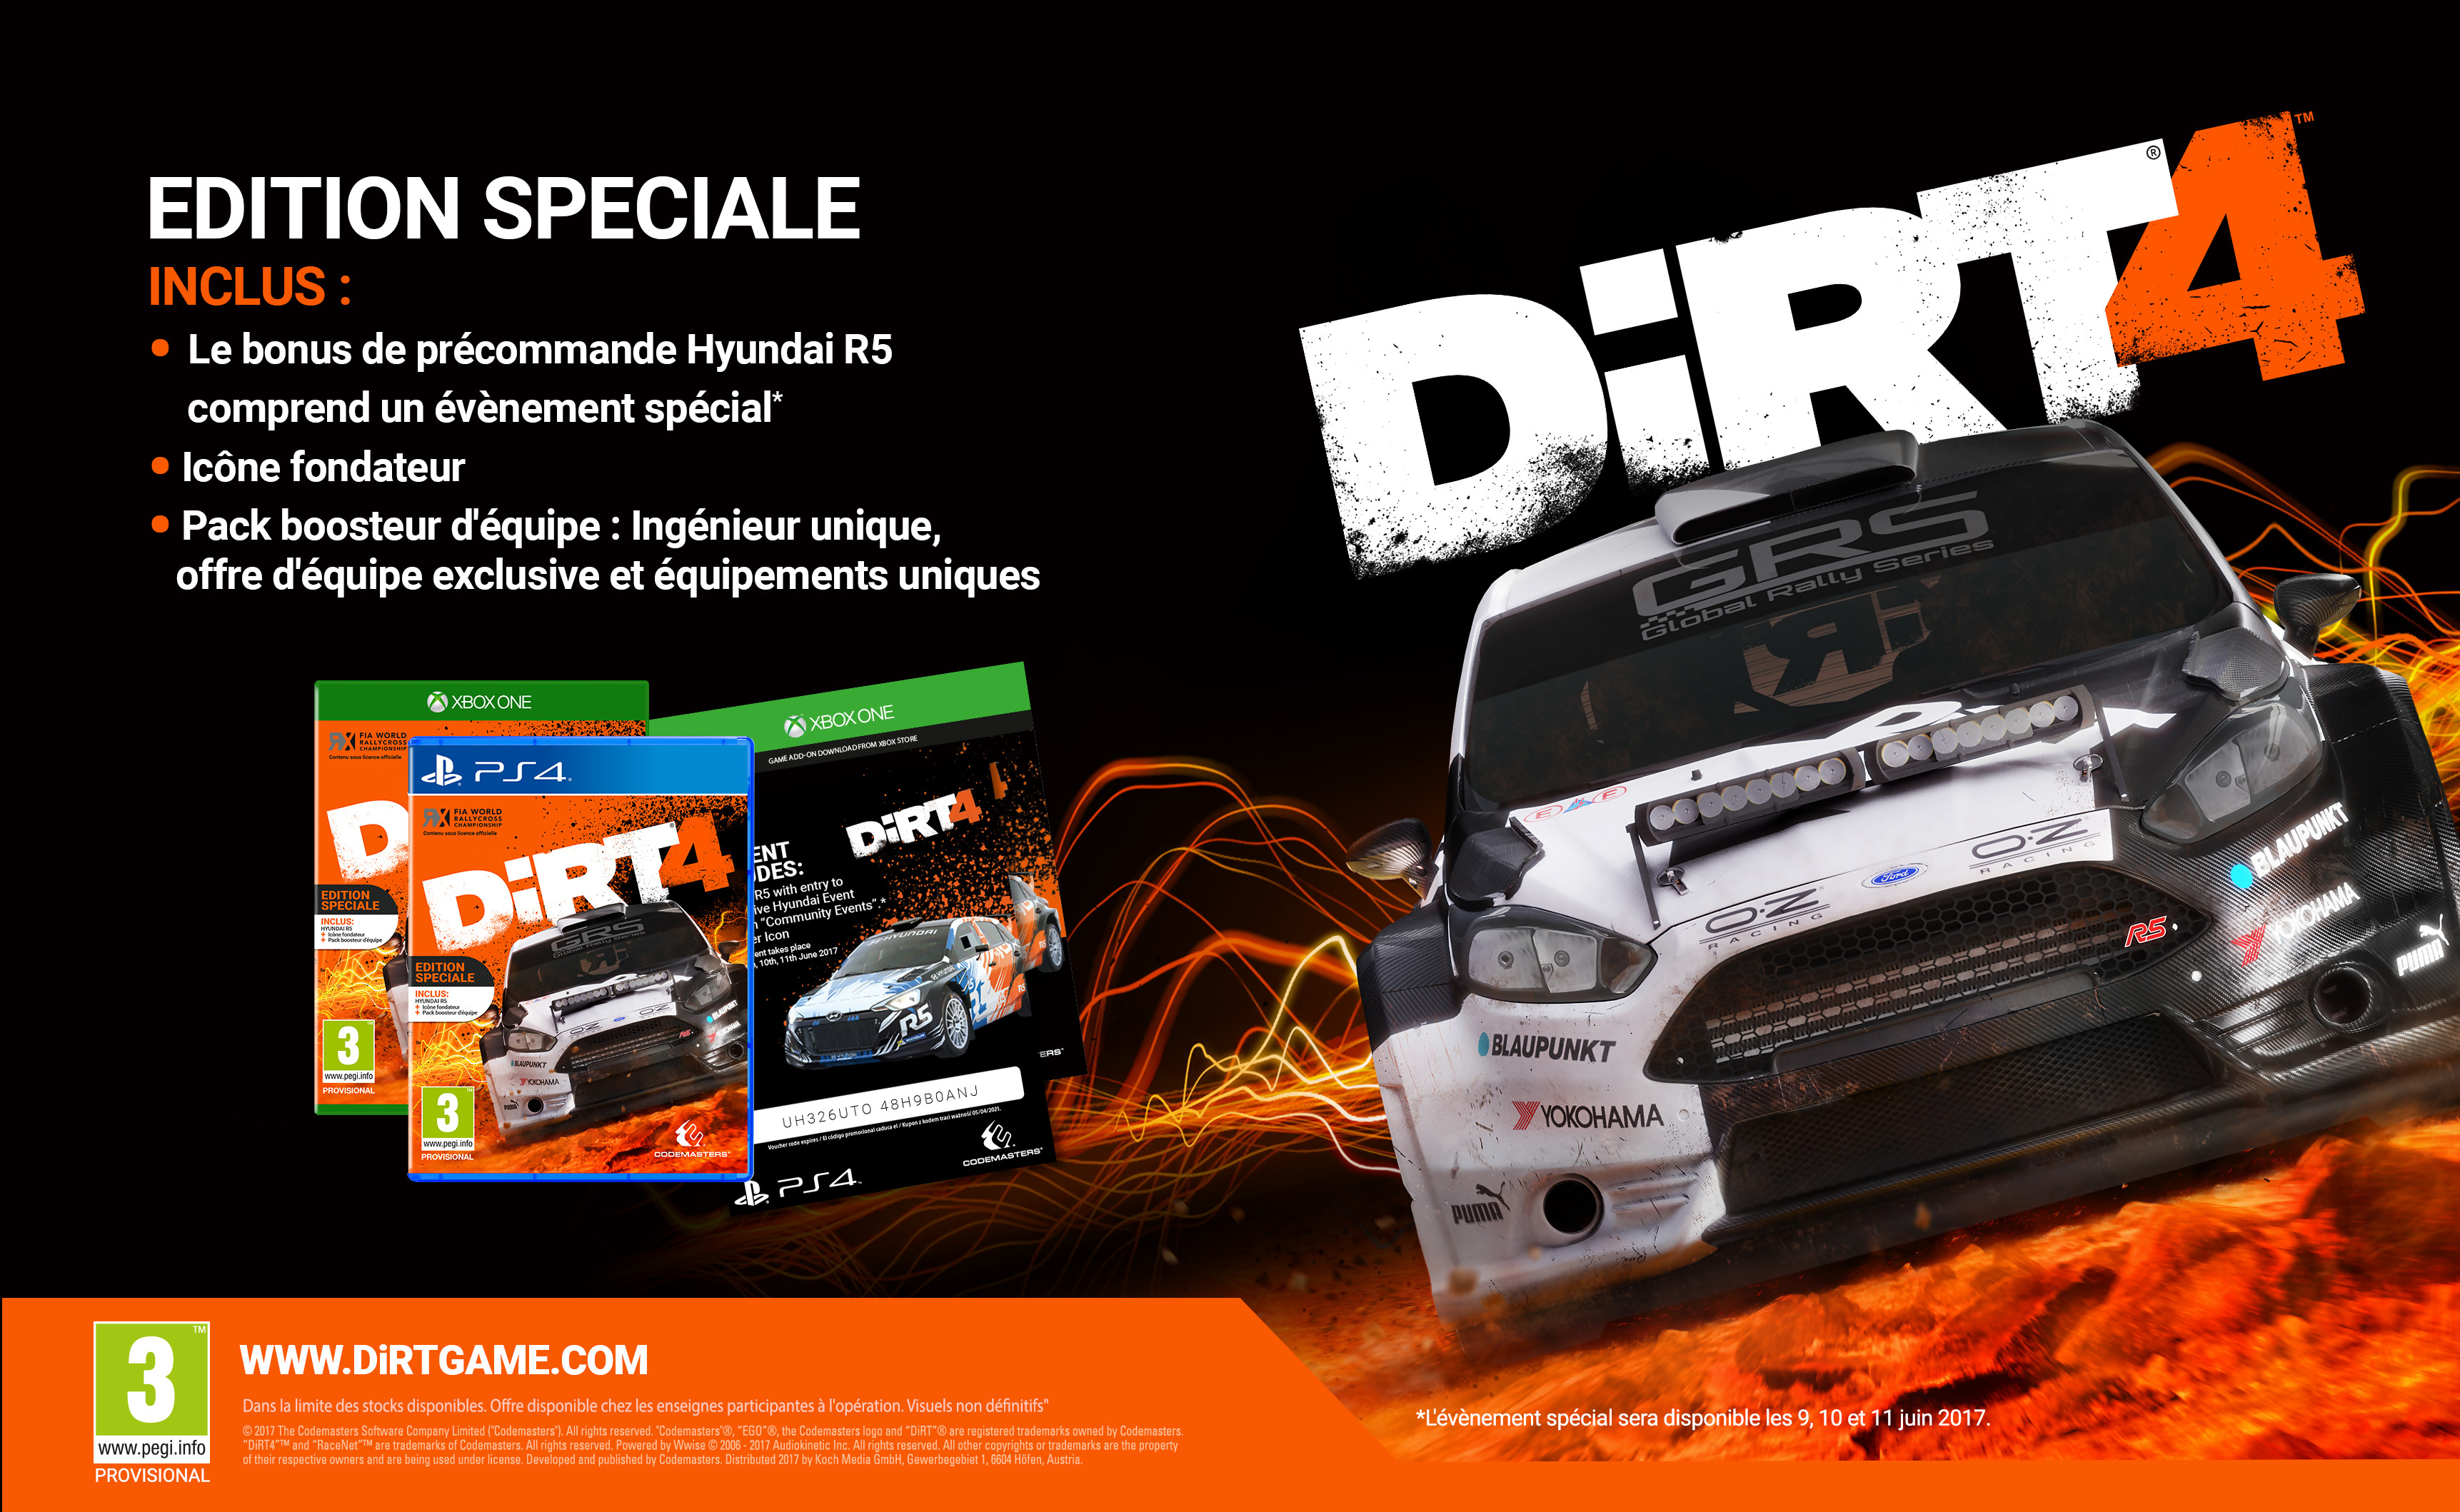 dirt 4 une vid o de gameplay et les ditions sp ciales d voil es. Black Bedroom Furniture Sets. Home Design Ideas